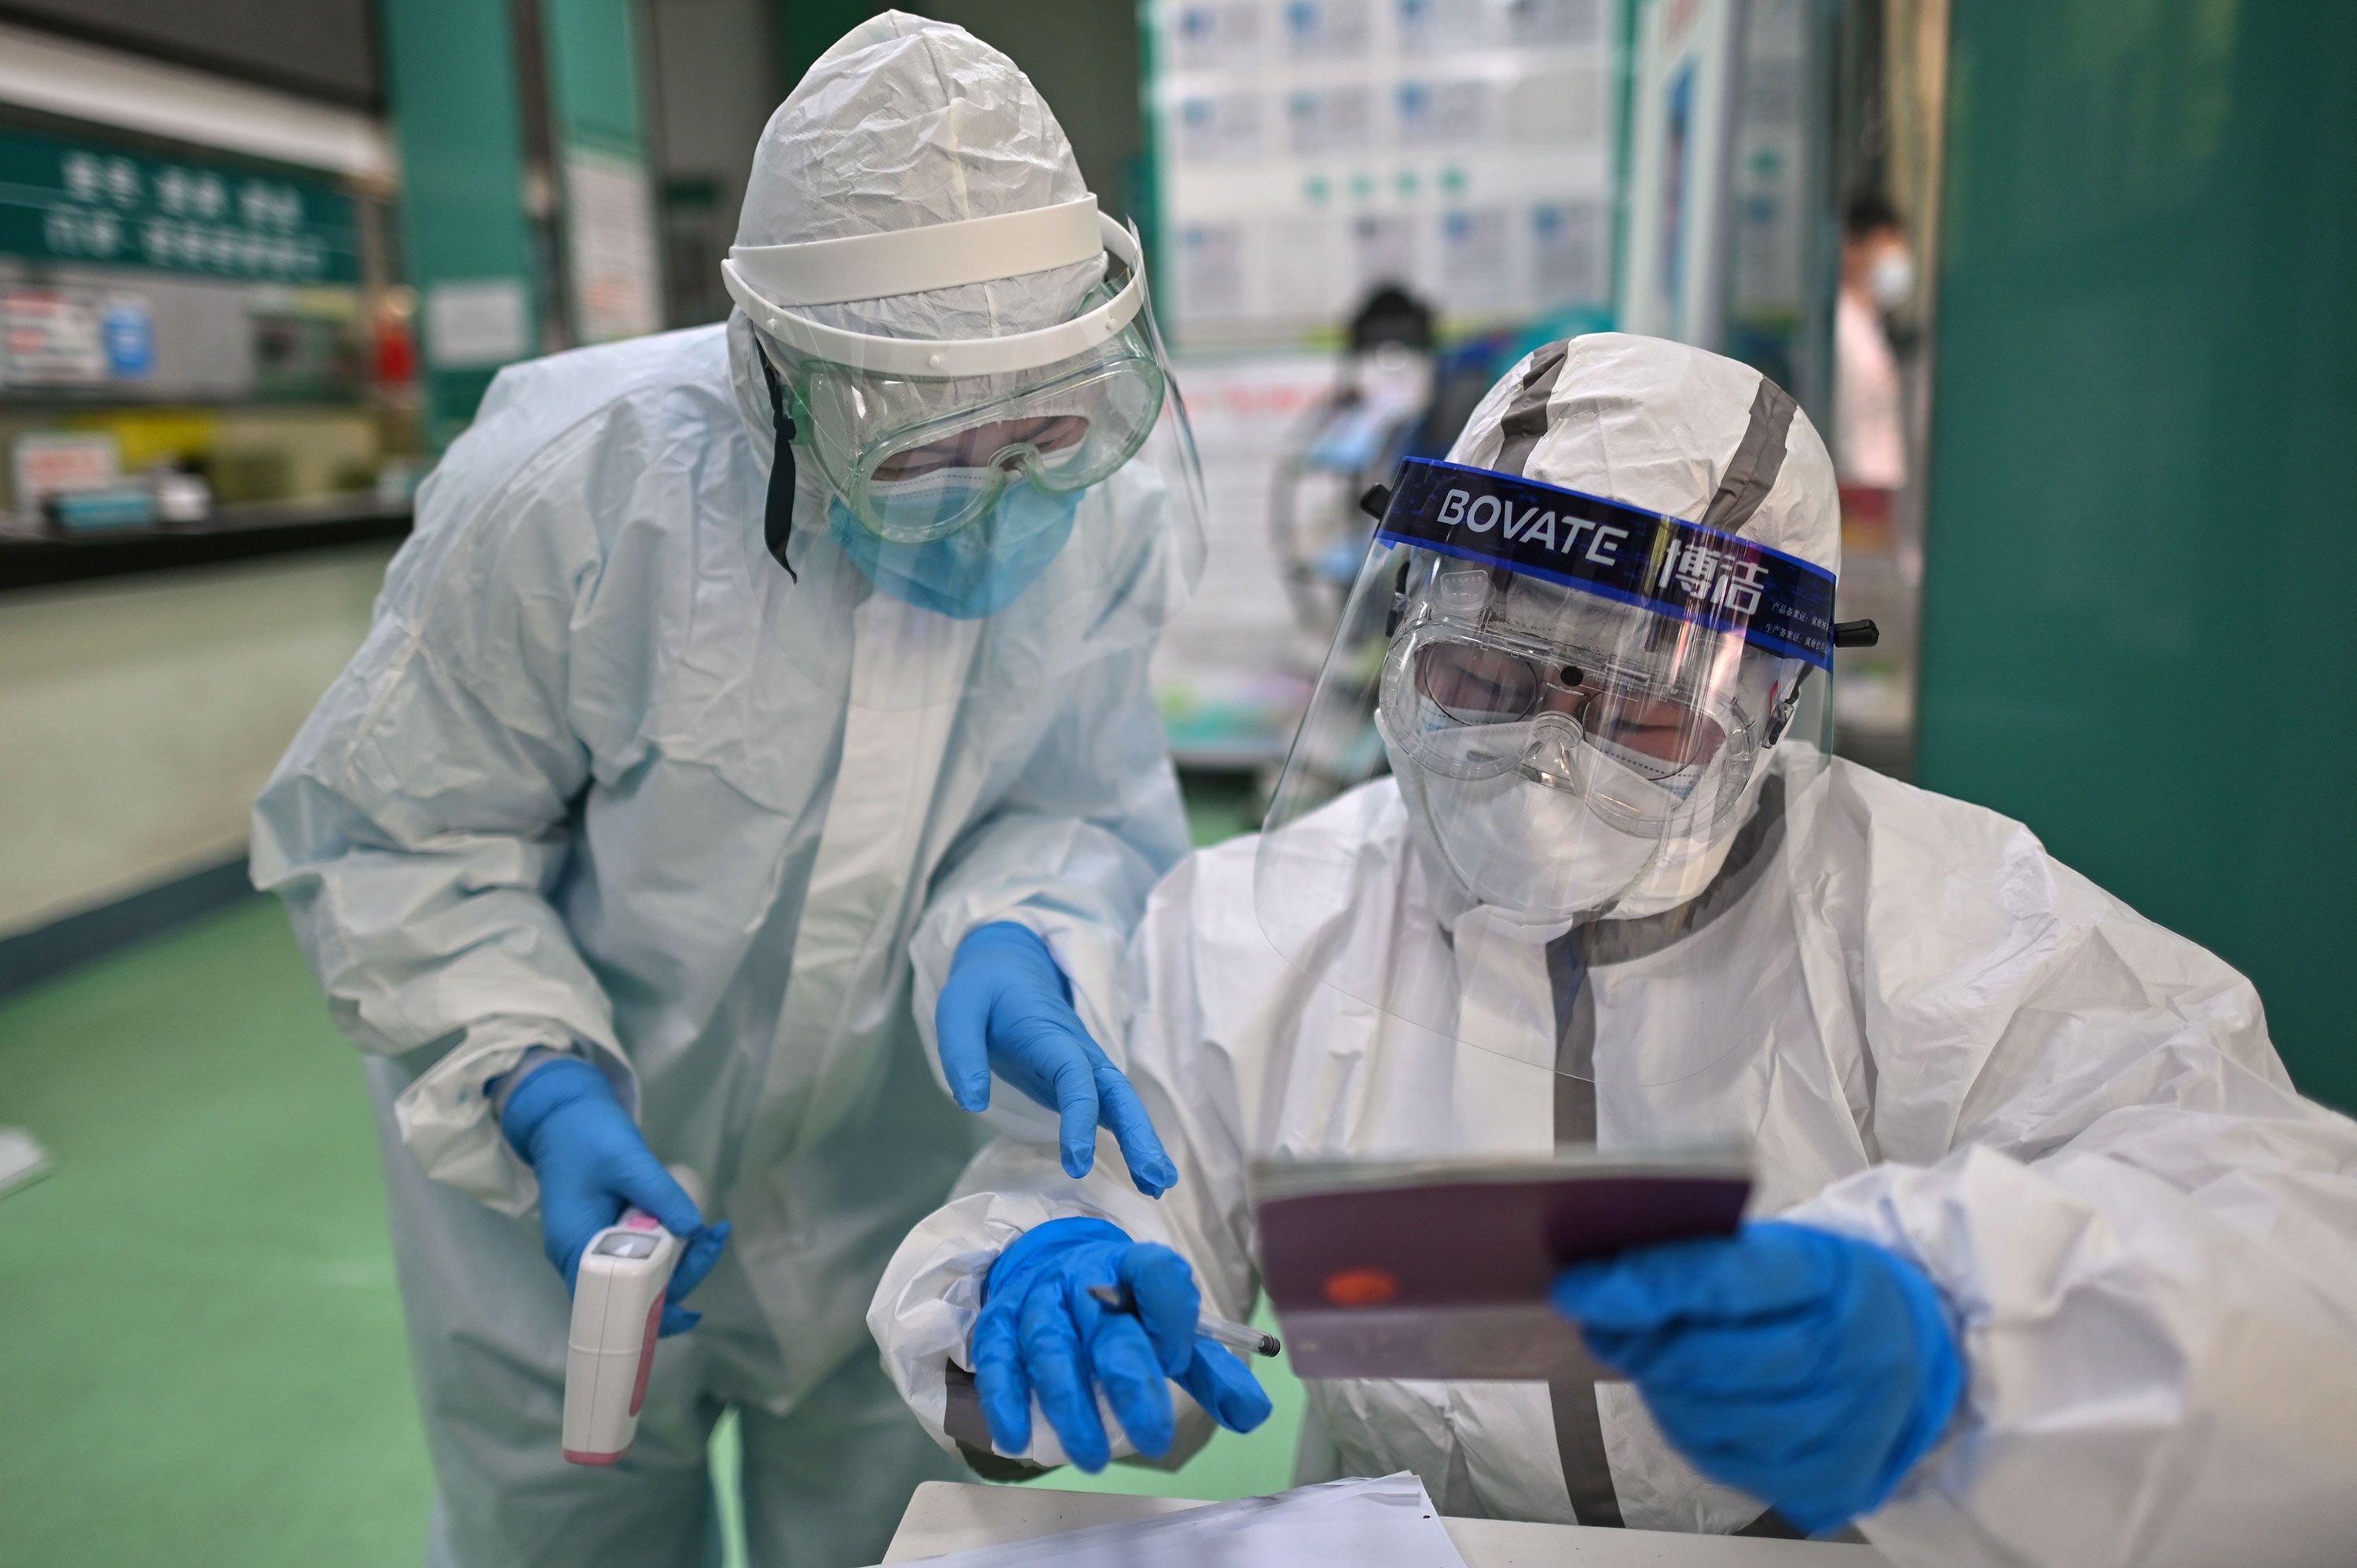 Medical personnel work at a coronavirus testing site on April 16 in Wuhan, China.